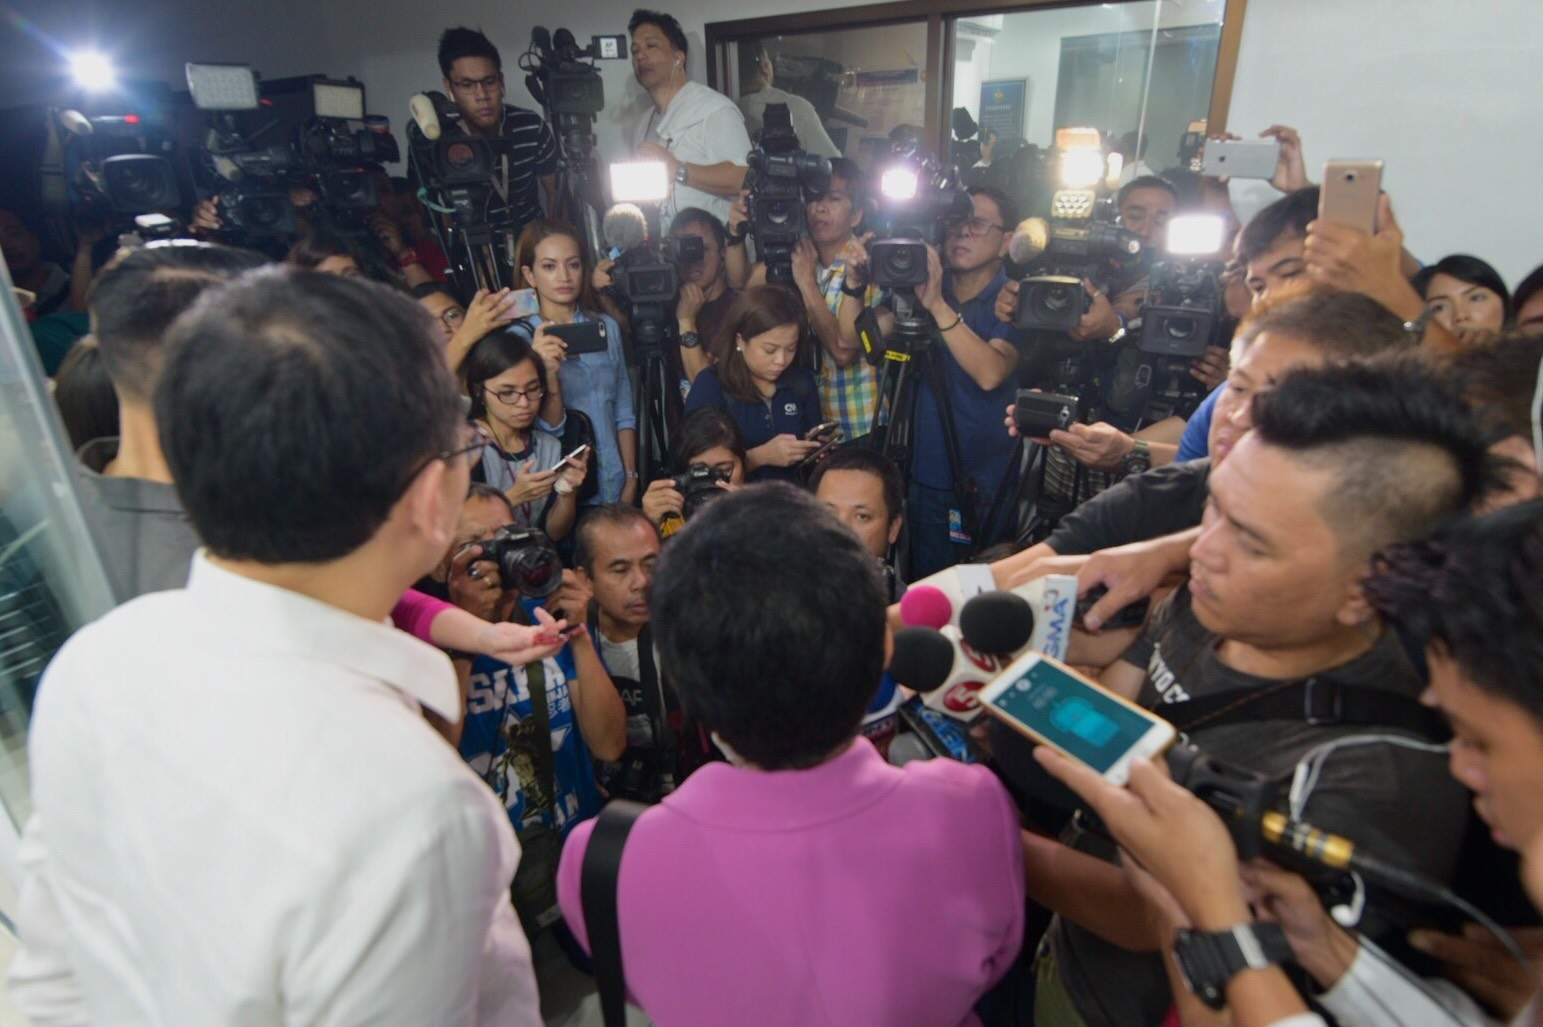 CYBER LIBEL. Rappler CEO Maria Ressa answers questions from the media on January 22, 2018, as she faces a cyber libel complaint over a 2012 article. Photo by Leanne Jazul / Rappler